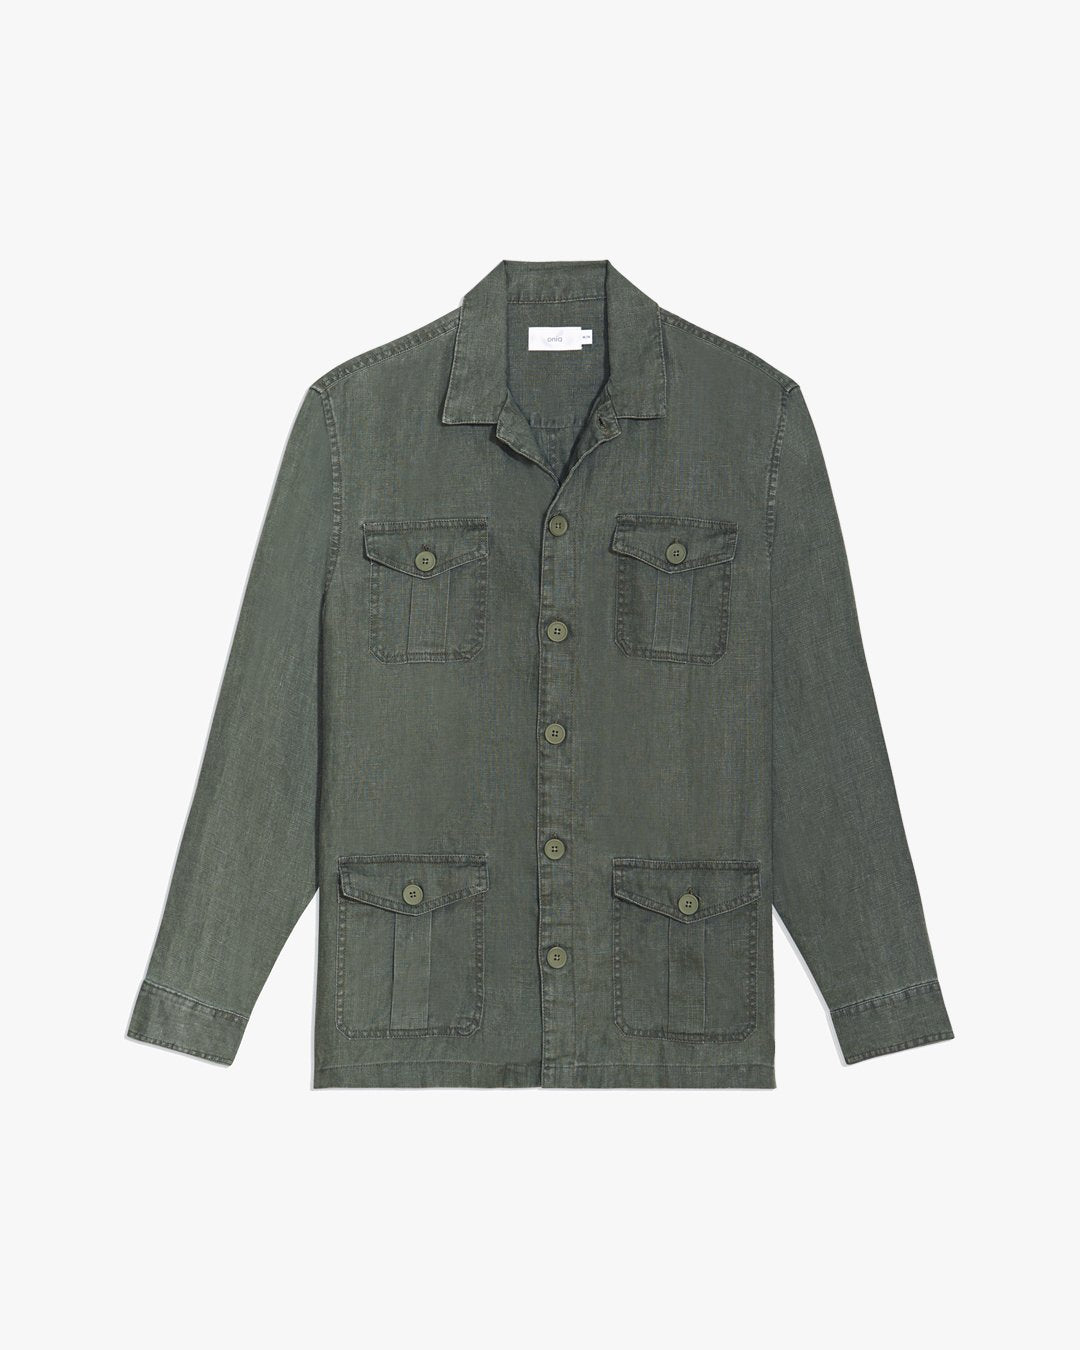 Linen Safari Jacket in Deep Sage - 9 - Onia